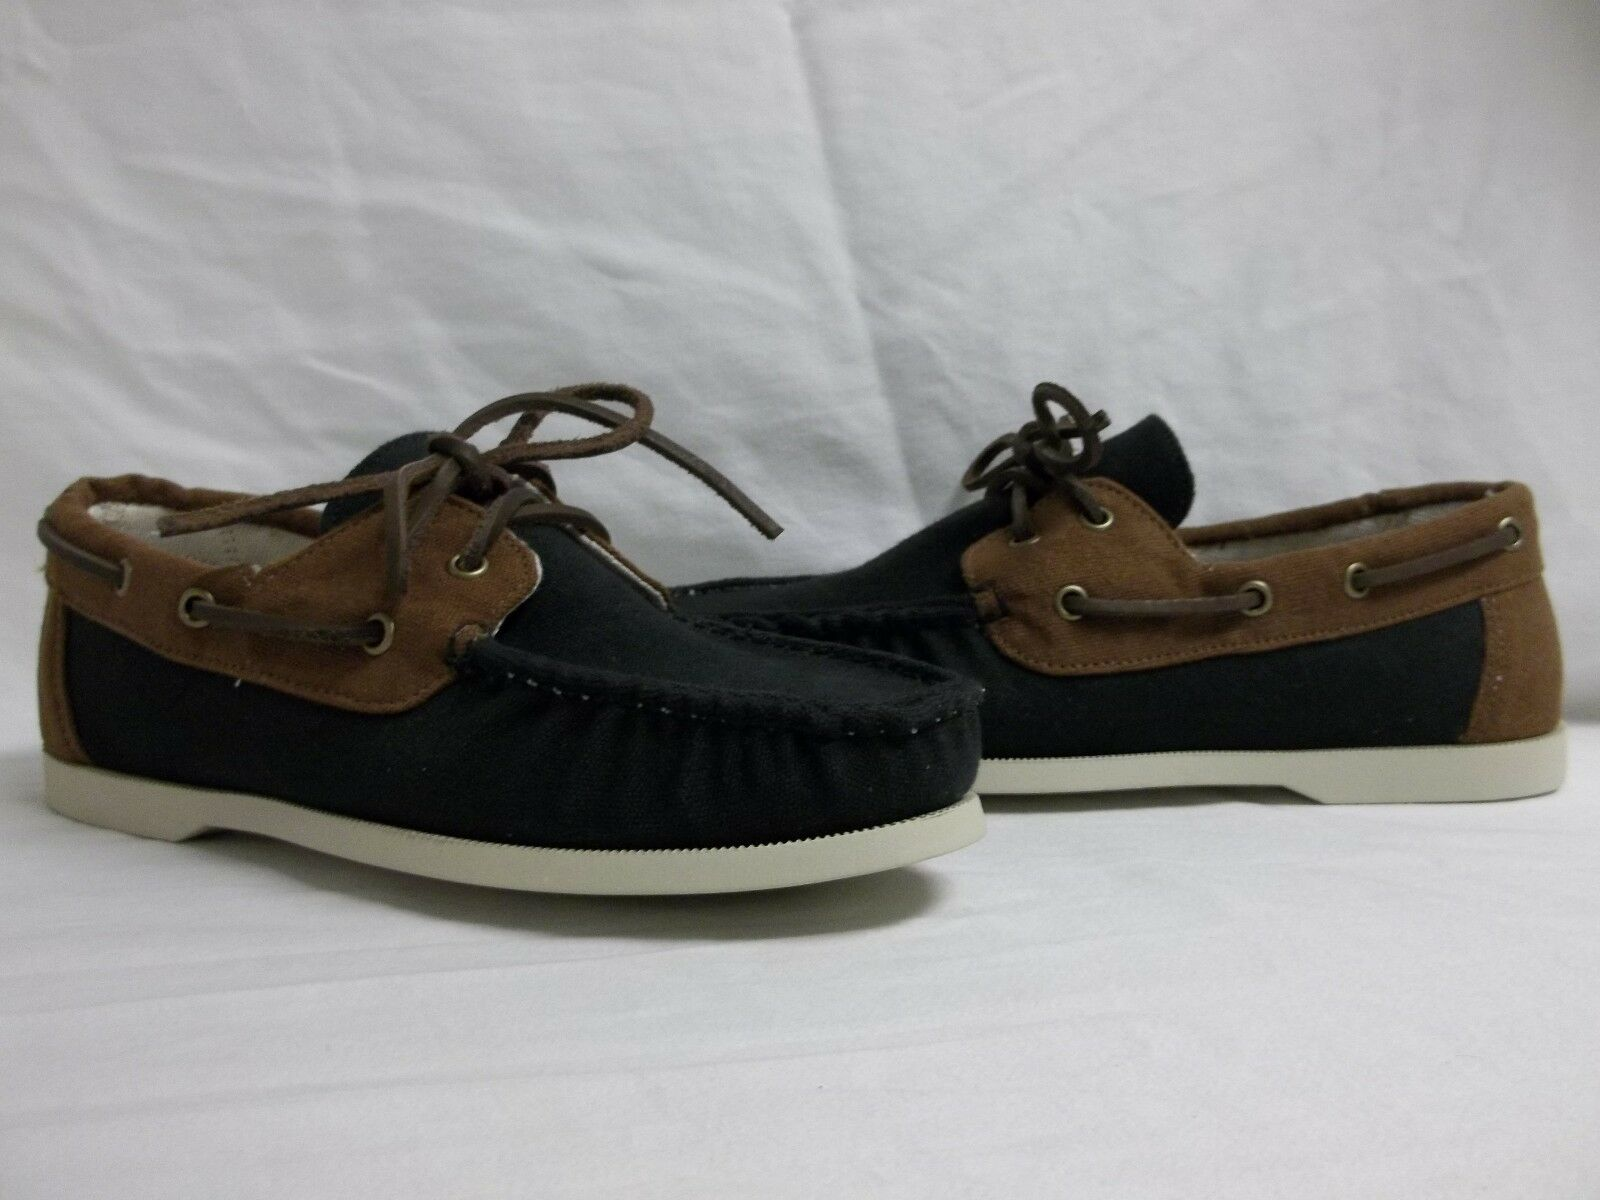 Cole Haan Size 8 M Dominick Black Tan Canvas Loafers New Mens Boat shoes NWOB